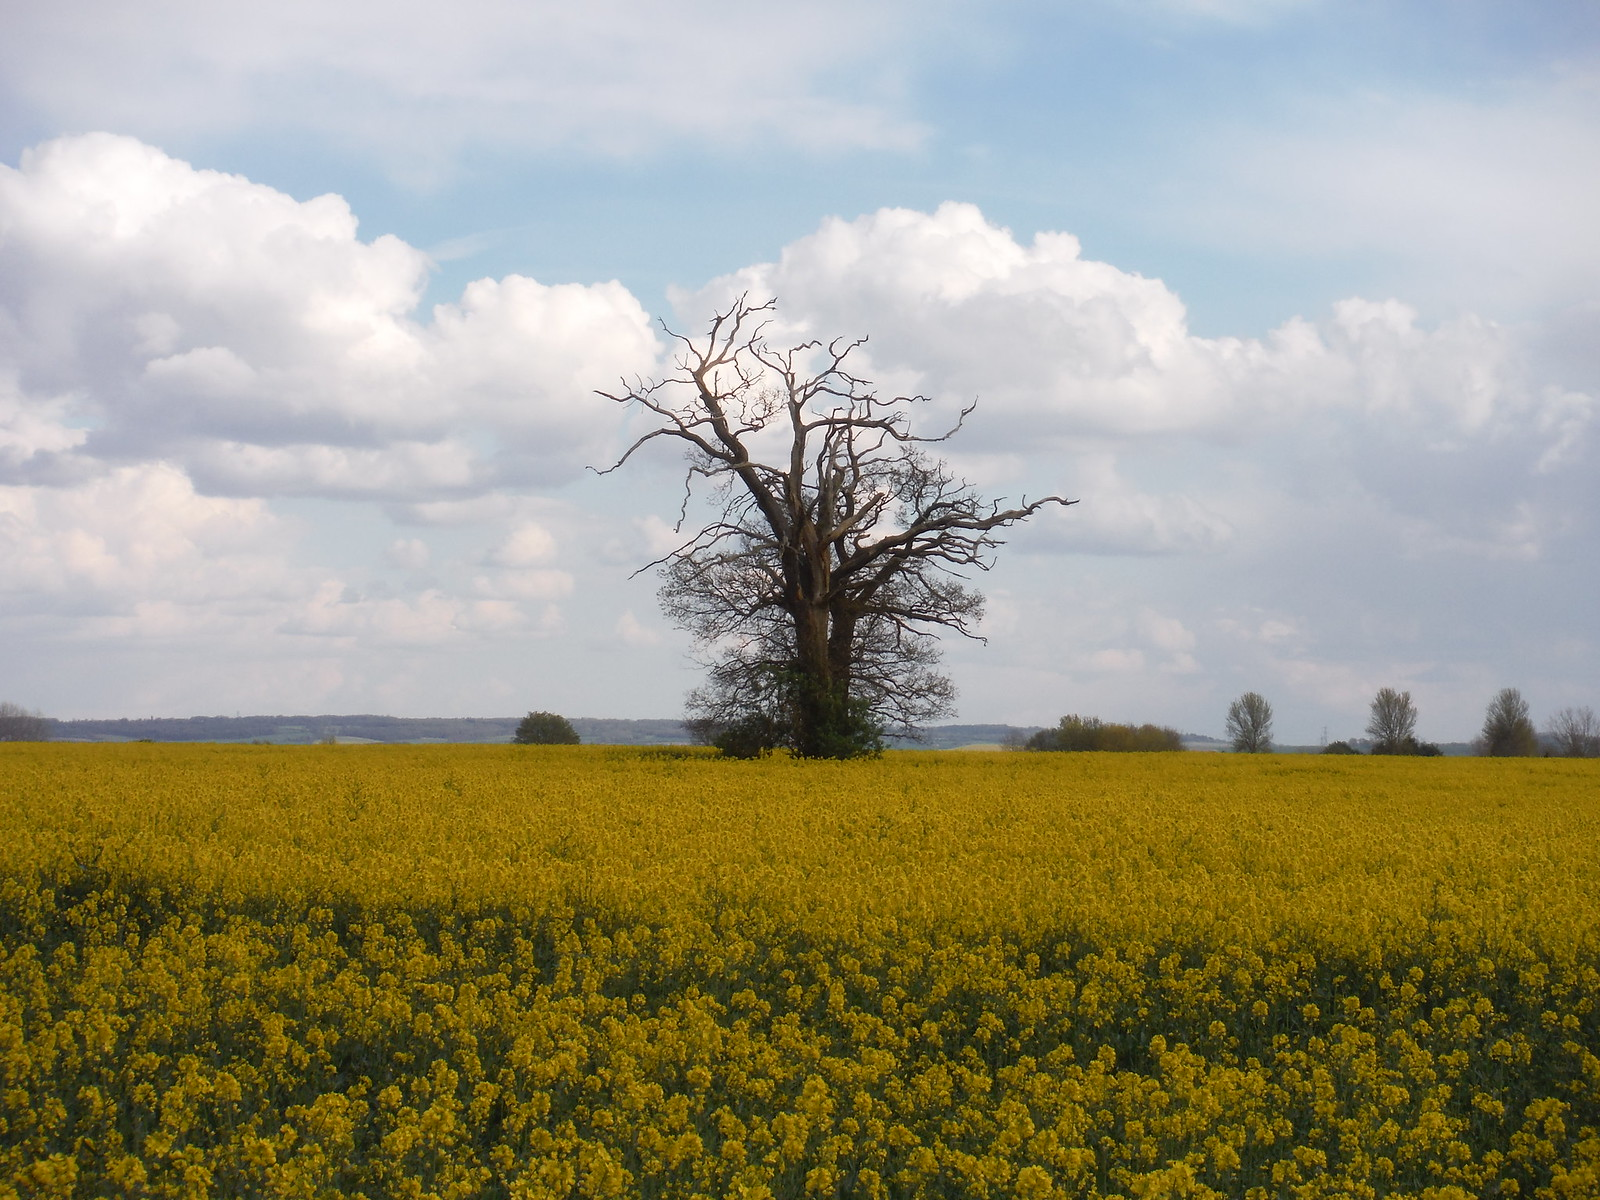 Lone Tree in Oilseed Rape Field SWC Walk 44 - Didcot Circular